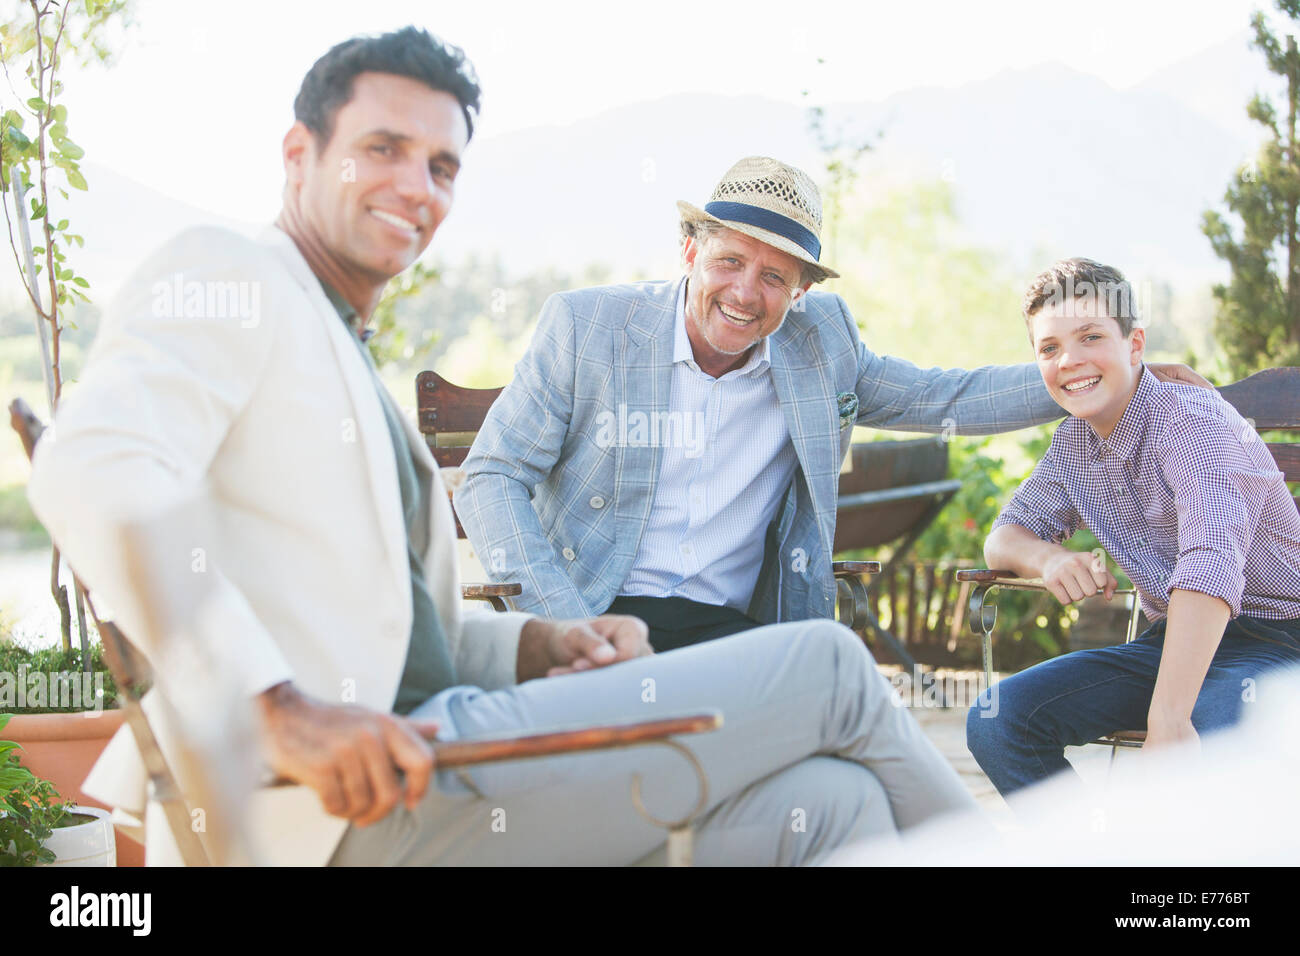 Three generations of men relaxing outdoors Stock Photo